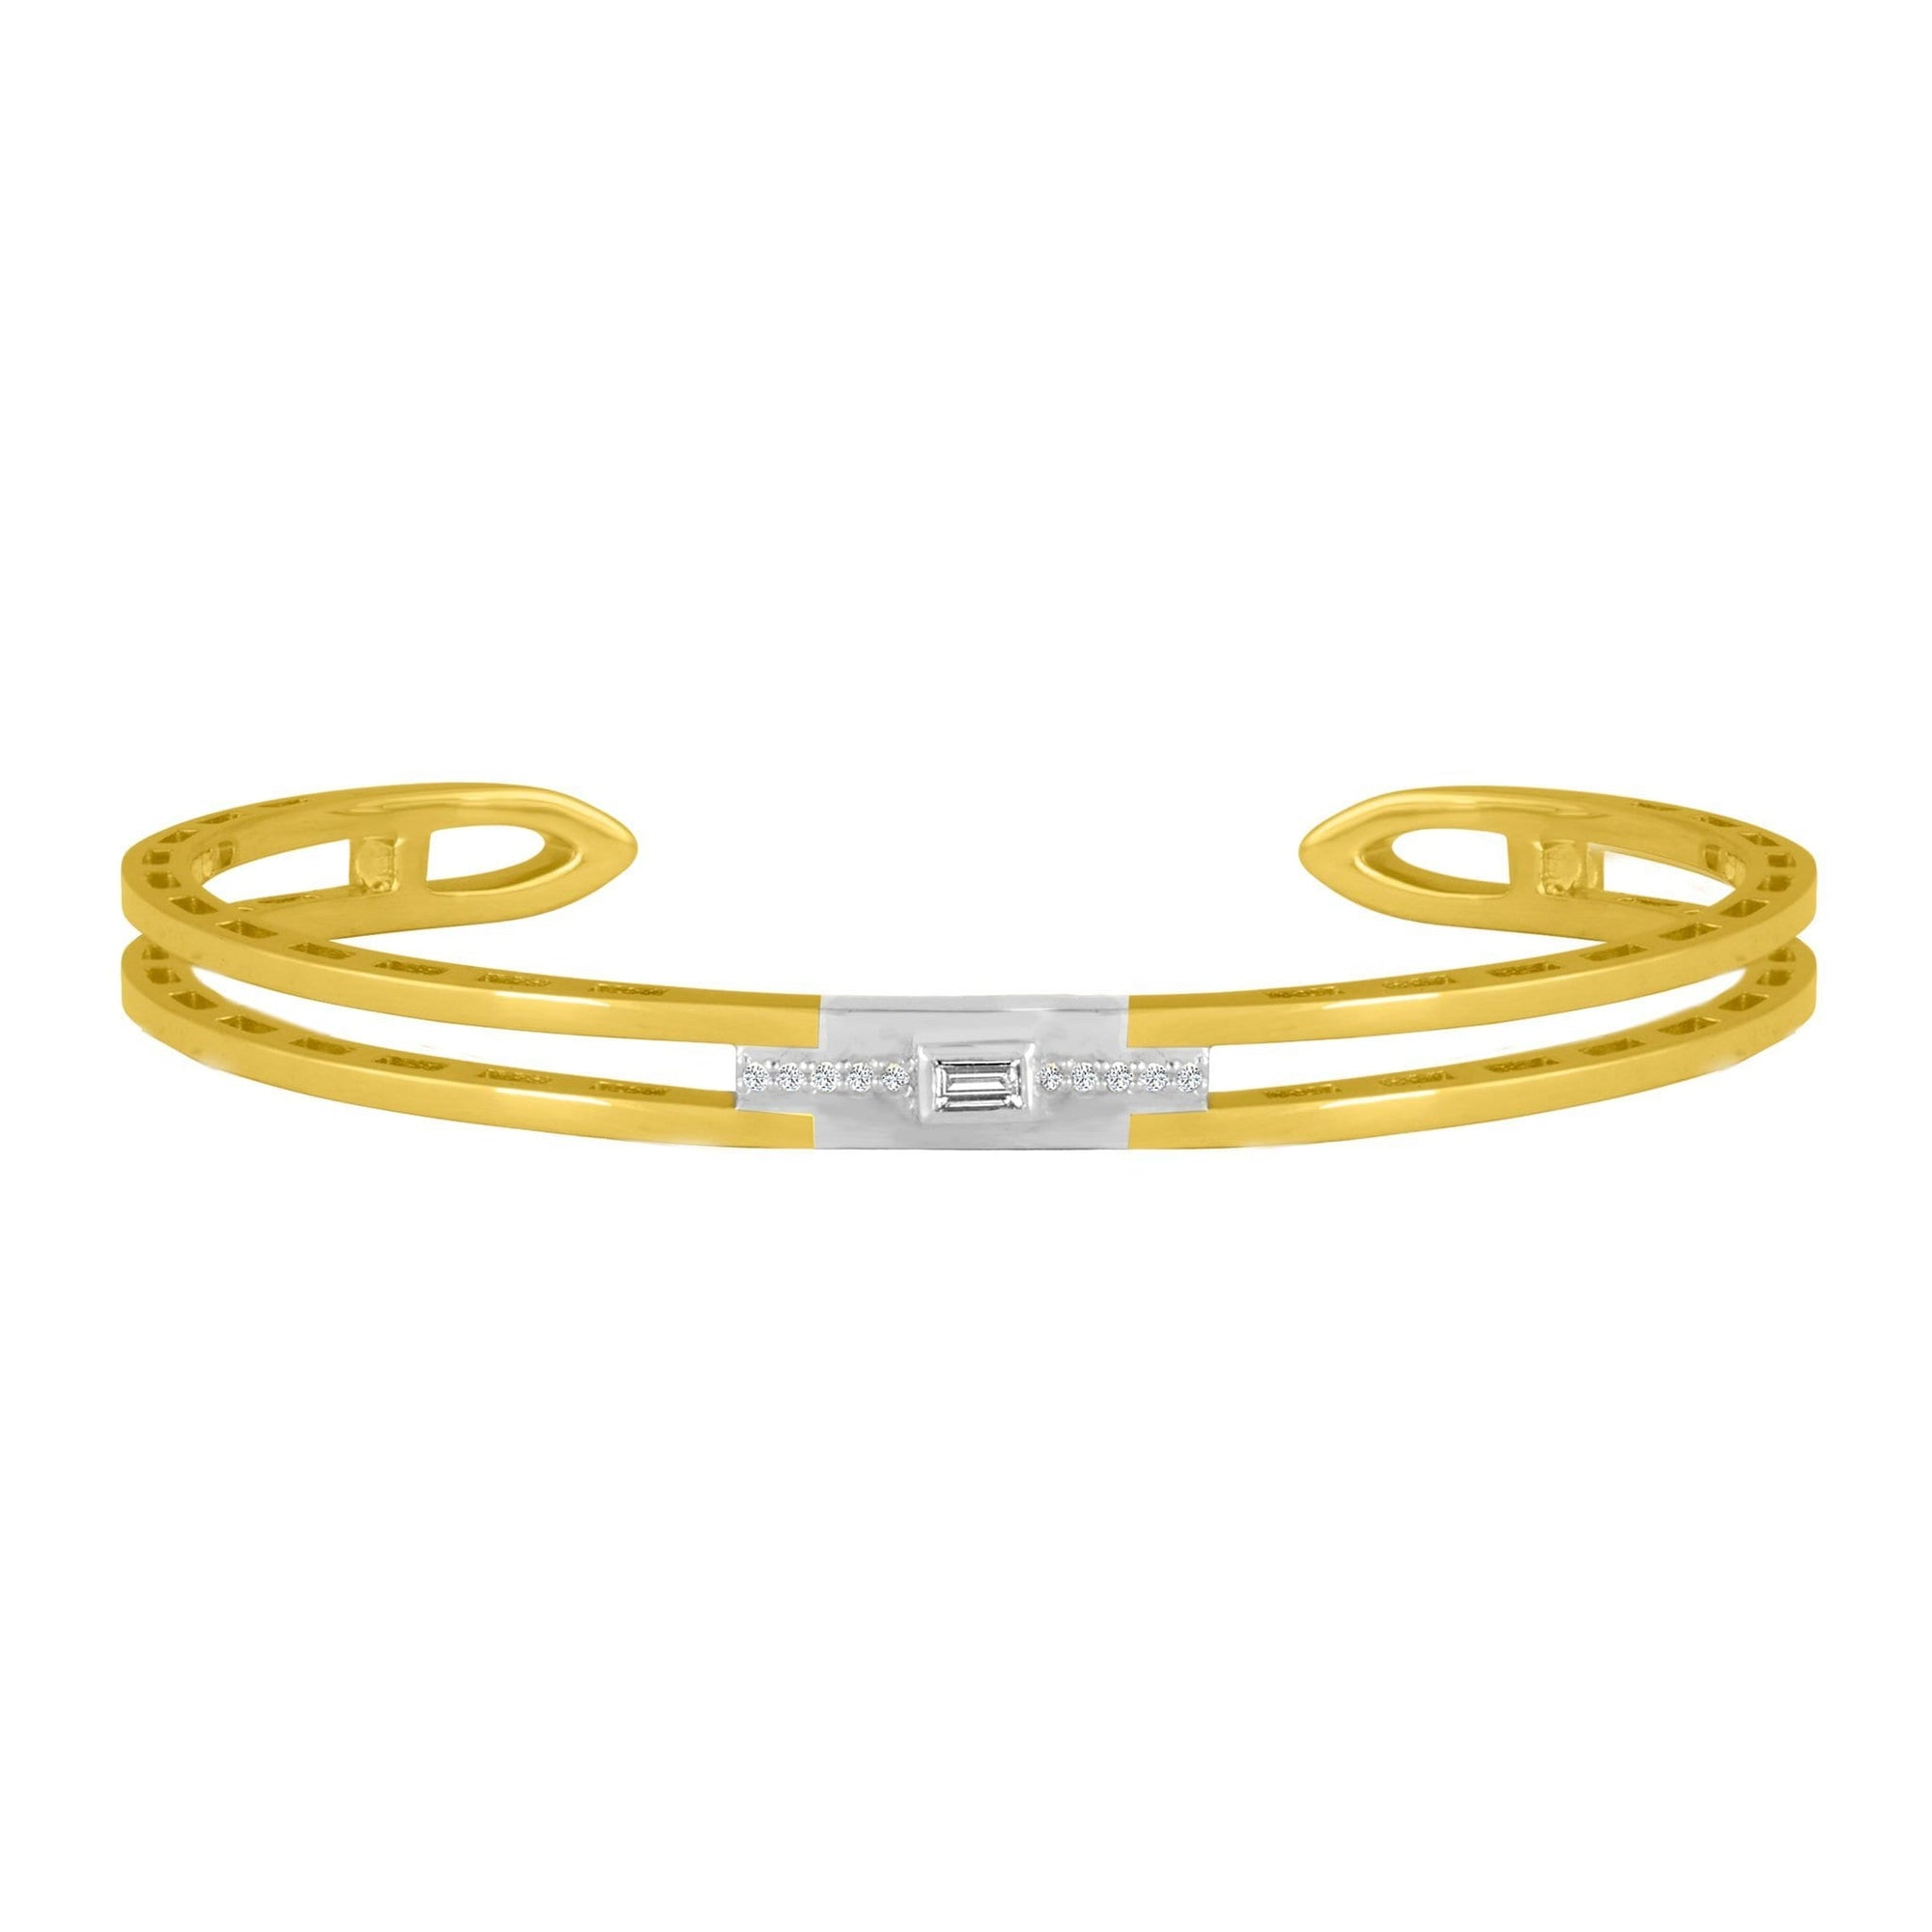 Edge Cuff Bracelet: 18k Yellow Gold